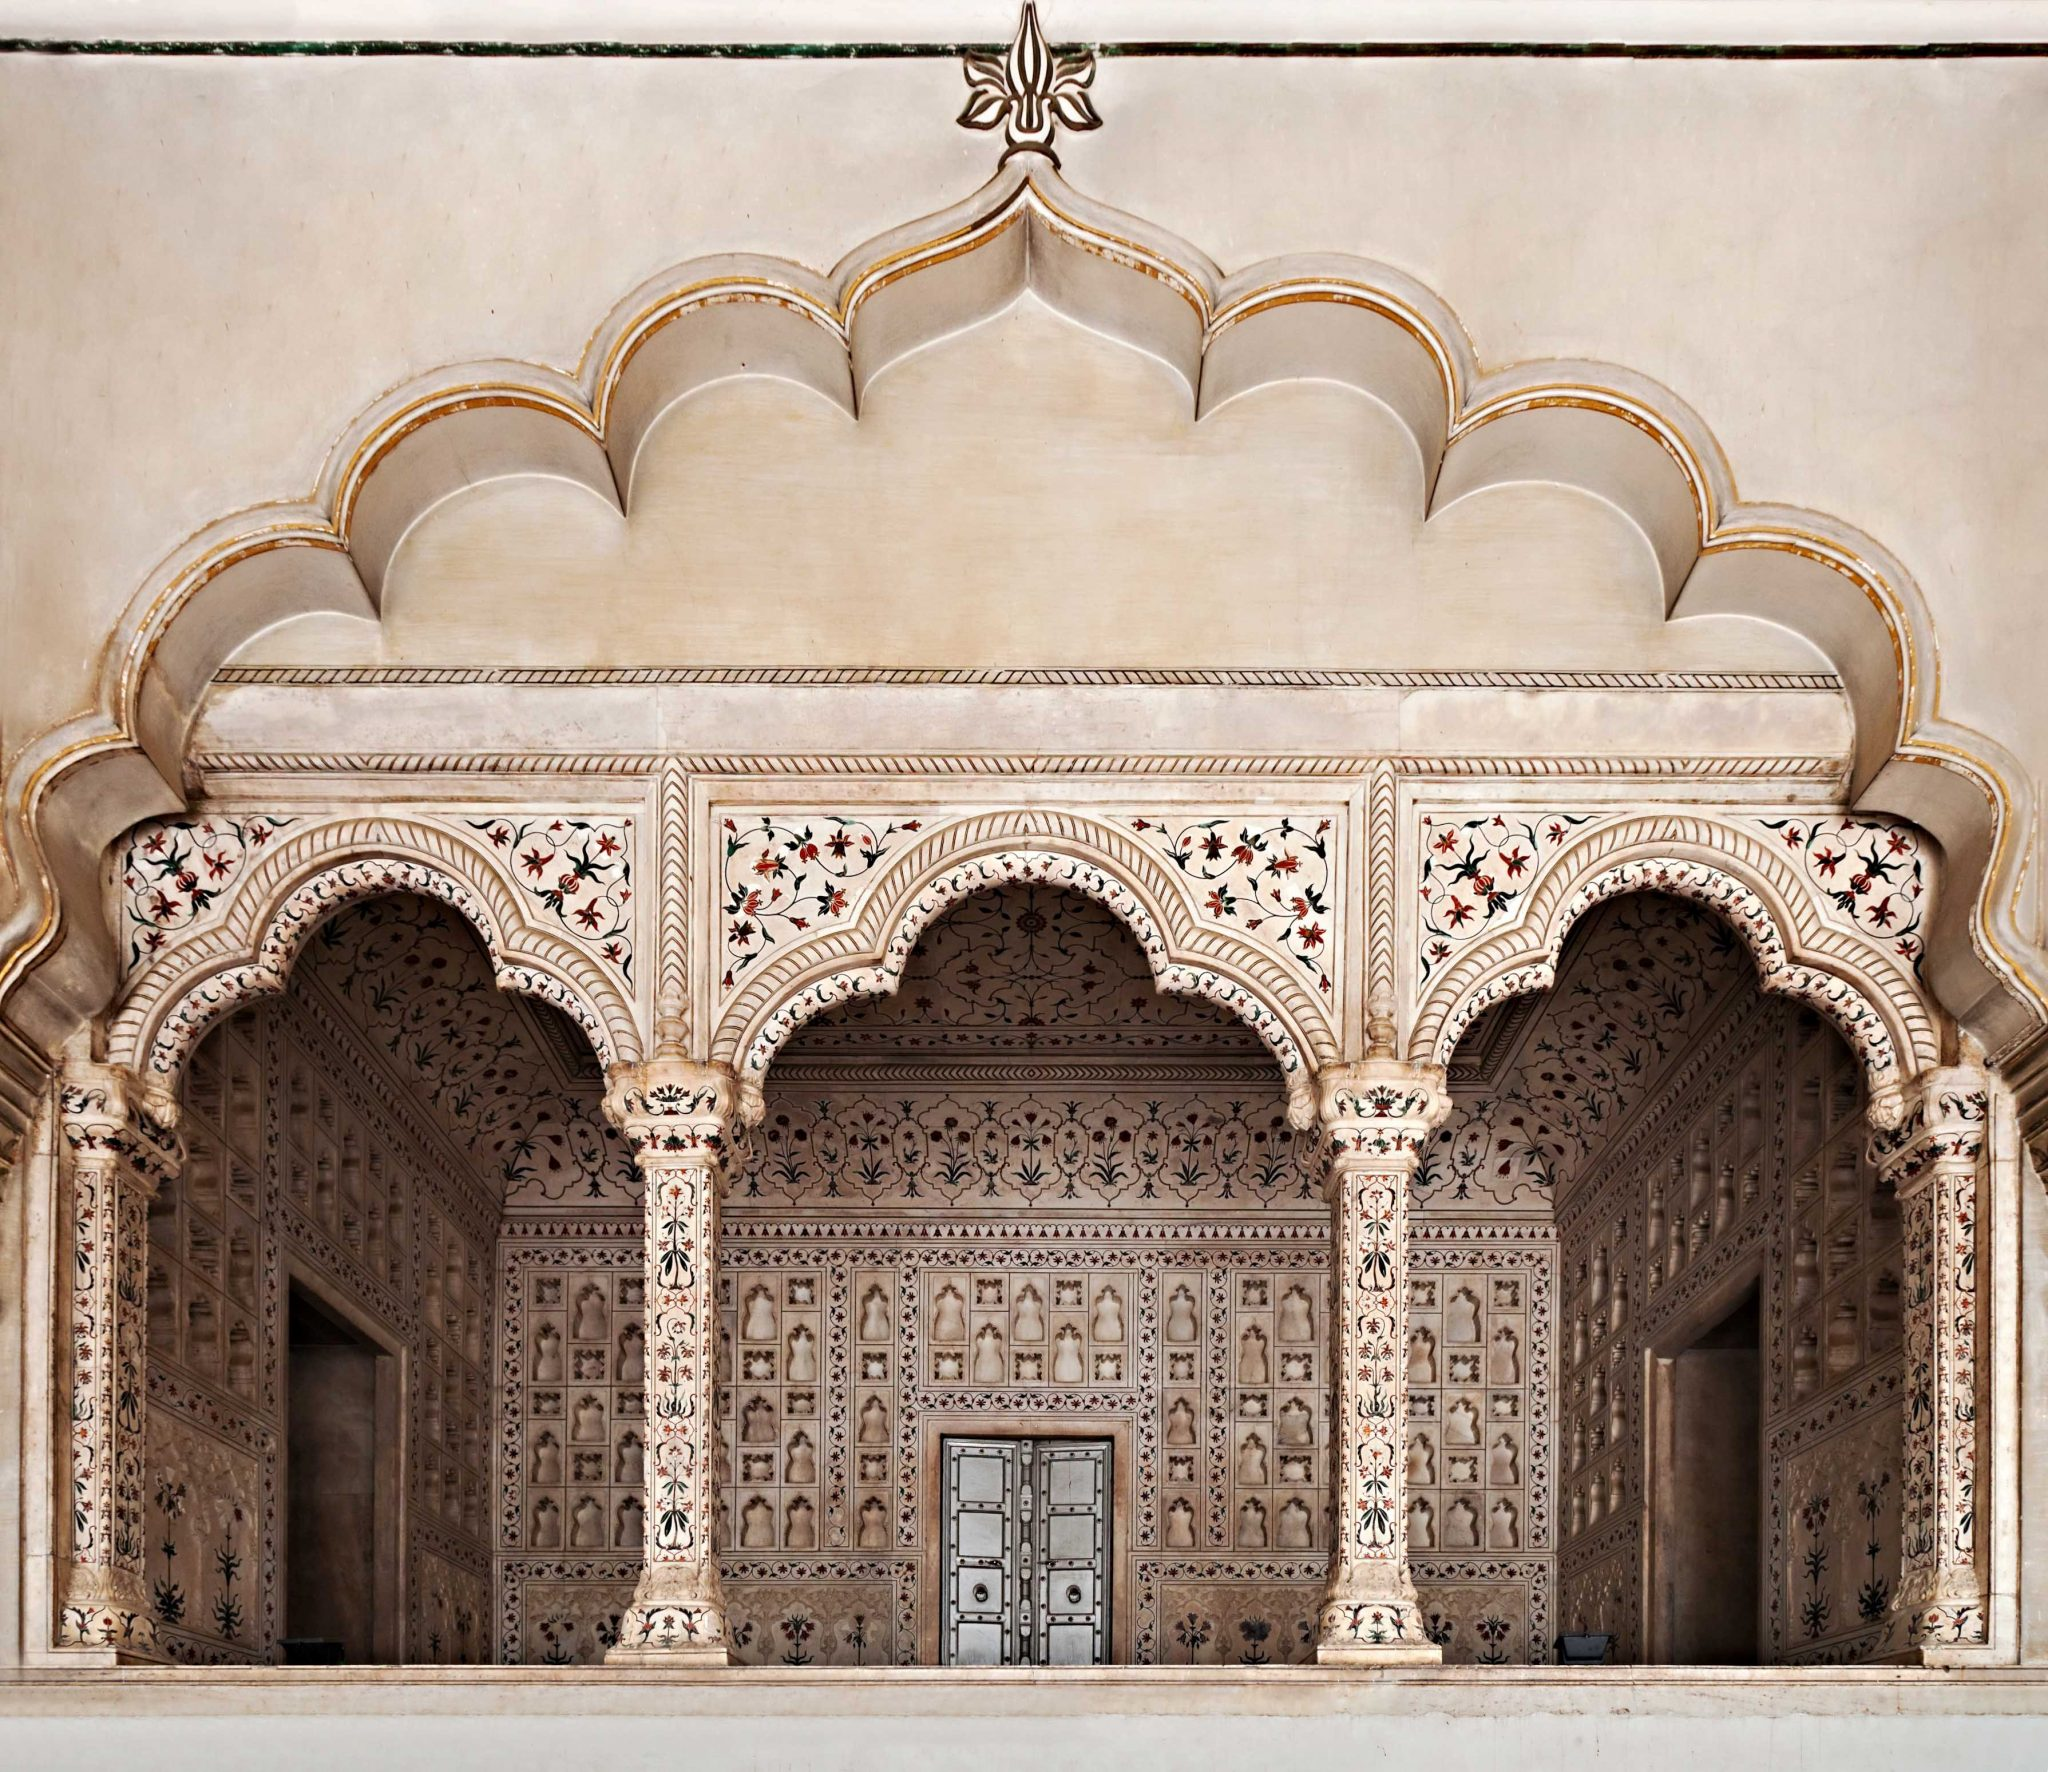 Arches Red Fort Agra India Tours and Travel Specialists India Best of Rajasthan